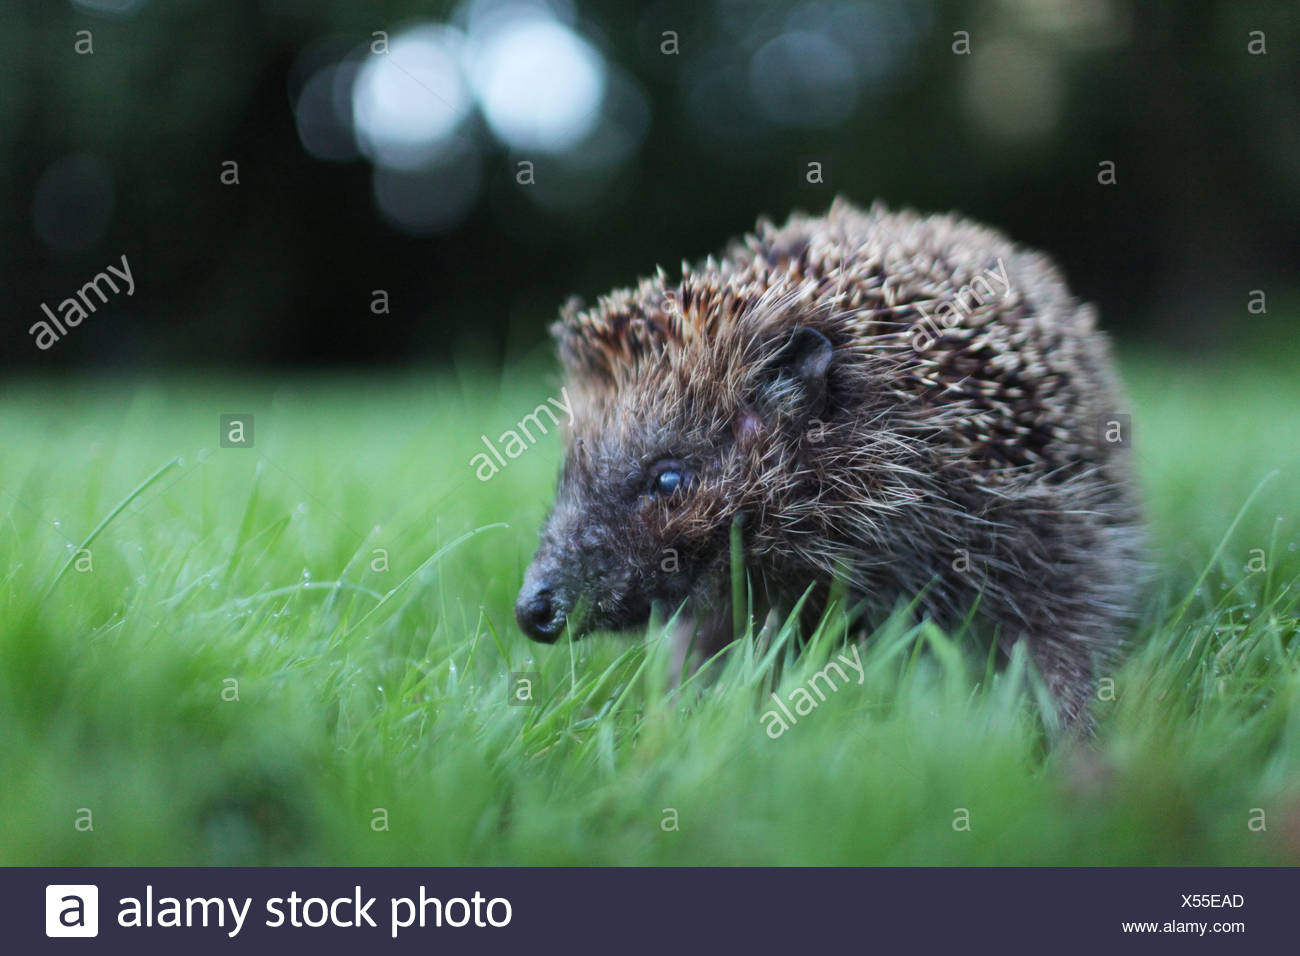 Handewitt, Germany, runs a hedgehog in the garden over the lawn - Stock Image